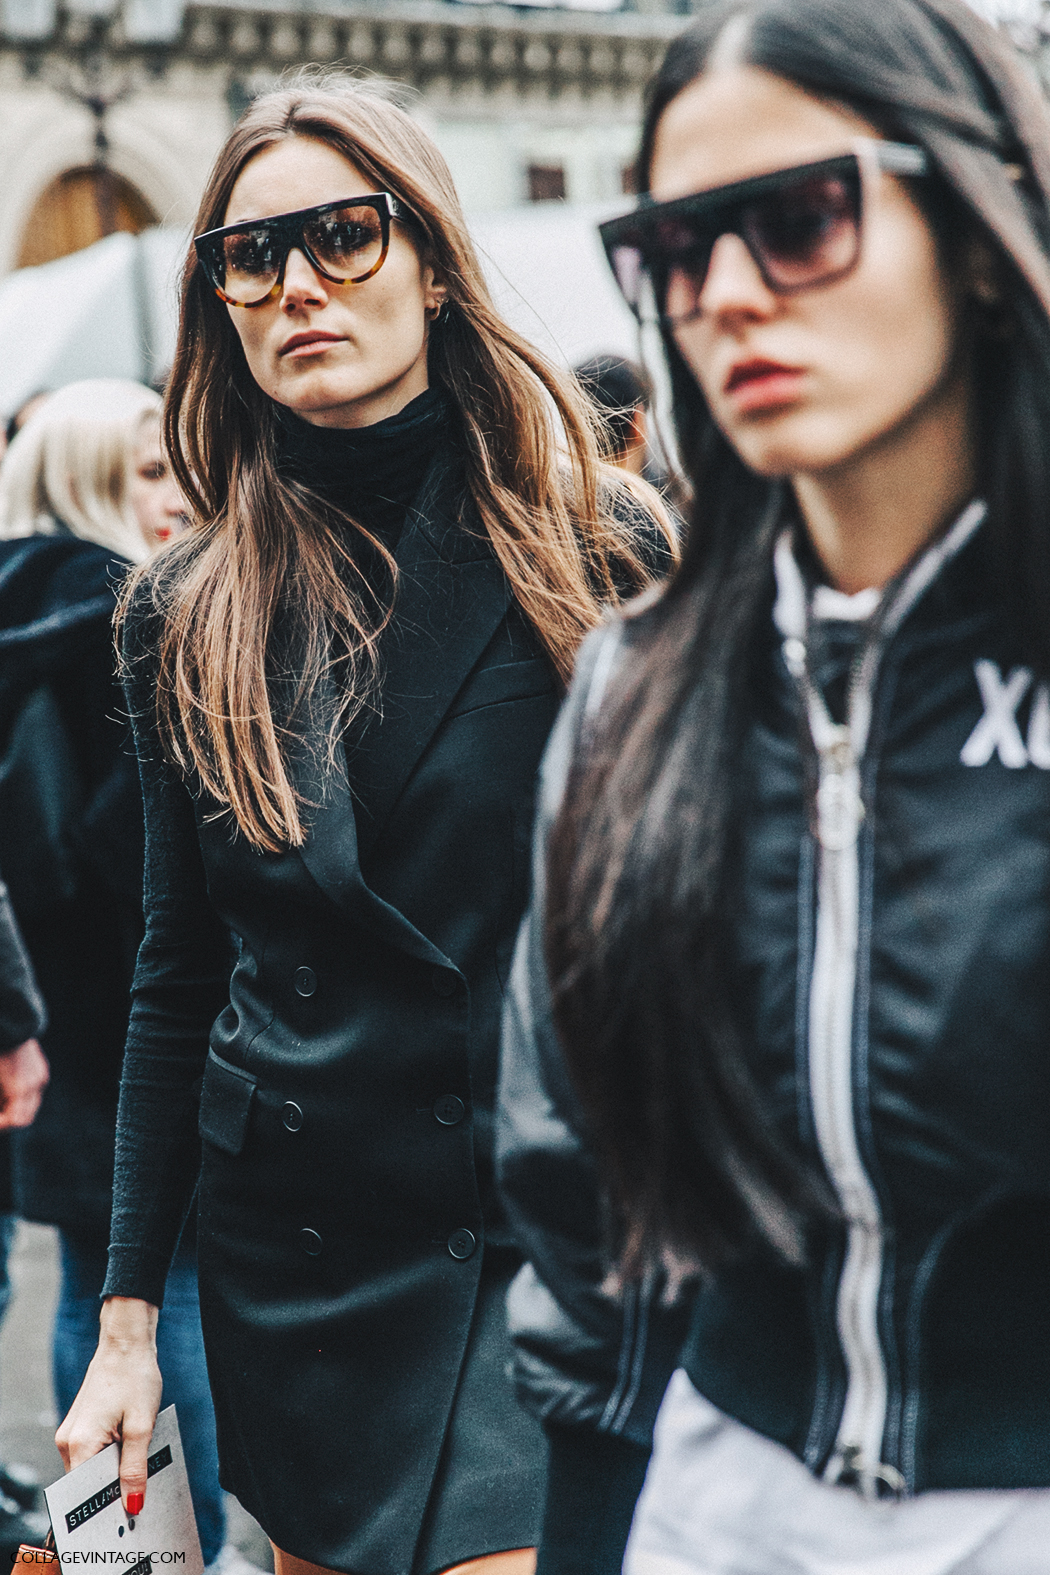 PFW-Paris_Fashion_Week_Fall_2016-Street_Style-Collage_Vintage-Stella_McCartney-Giorgia_Tordini-Gilda_Ambrossio-